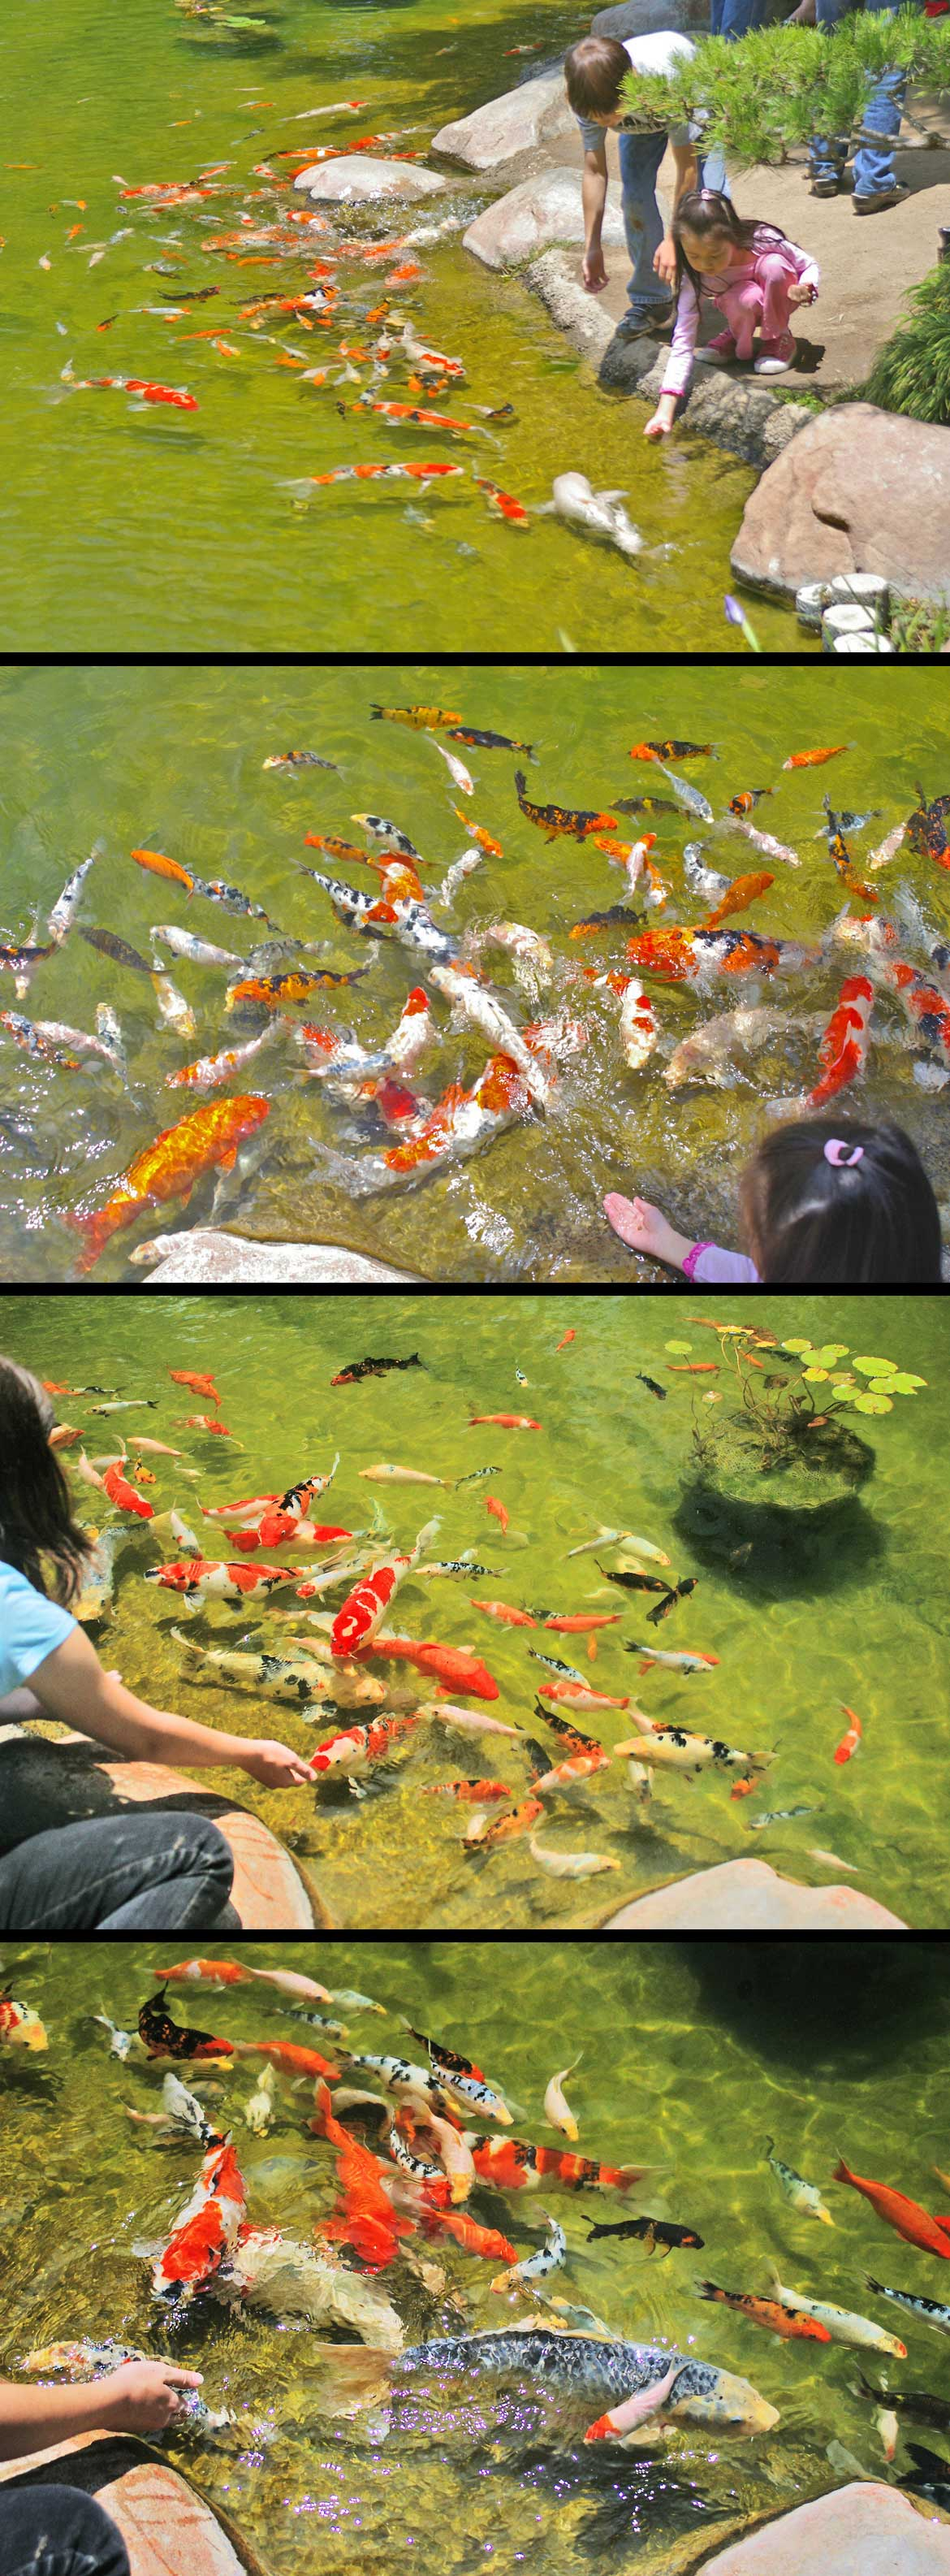 The Joy of Koi #14 - feeding the fishies